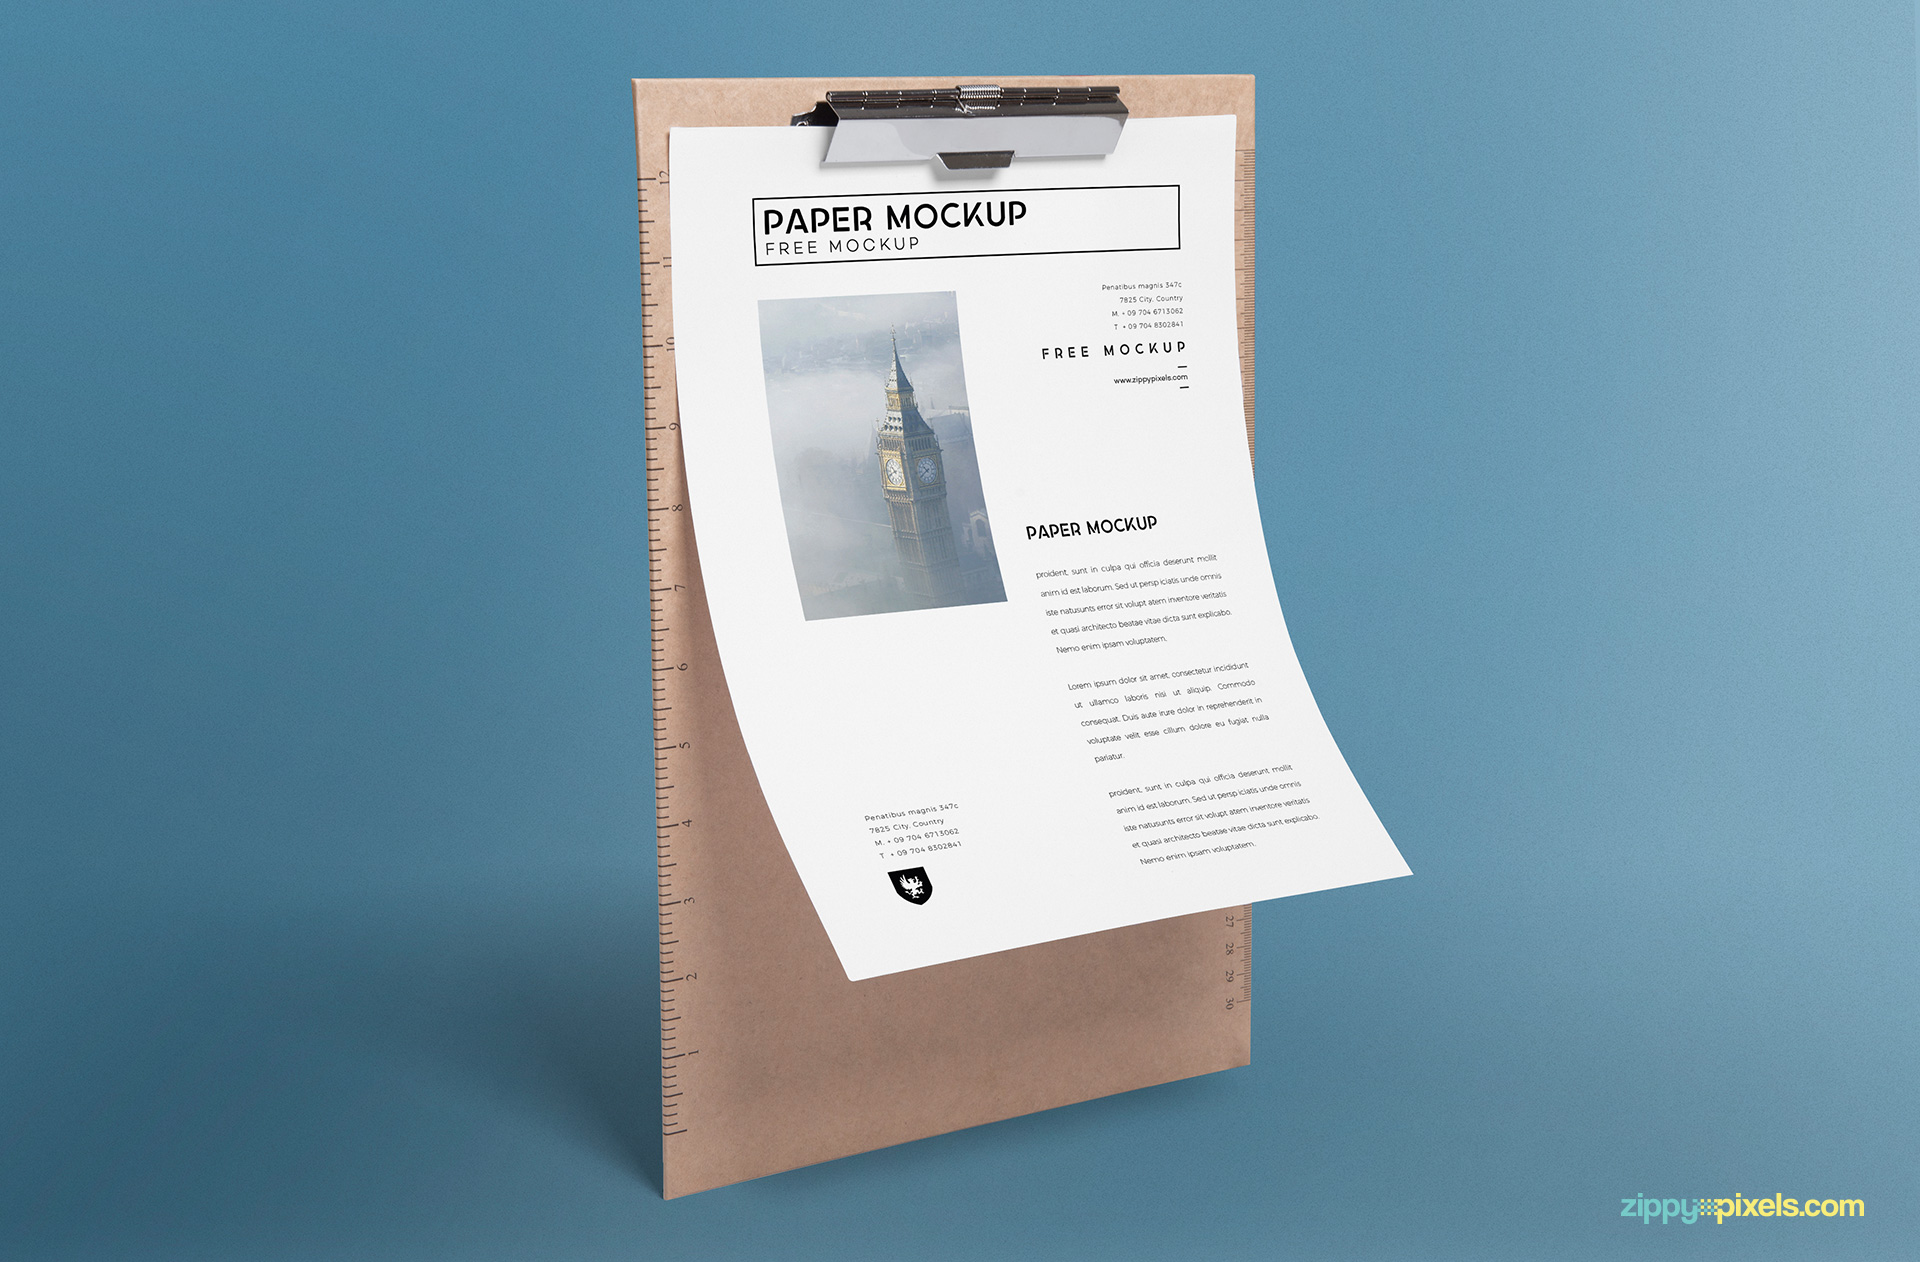 Free paper mockup in standing position.